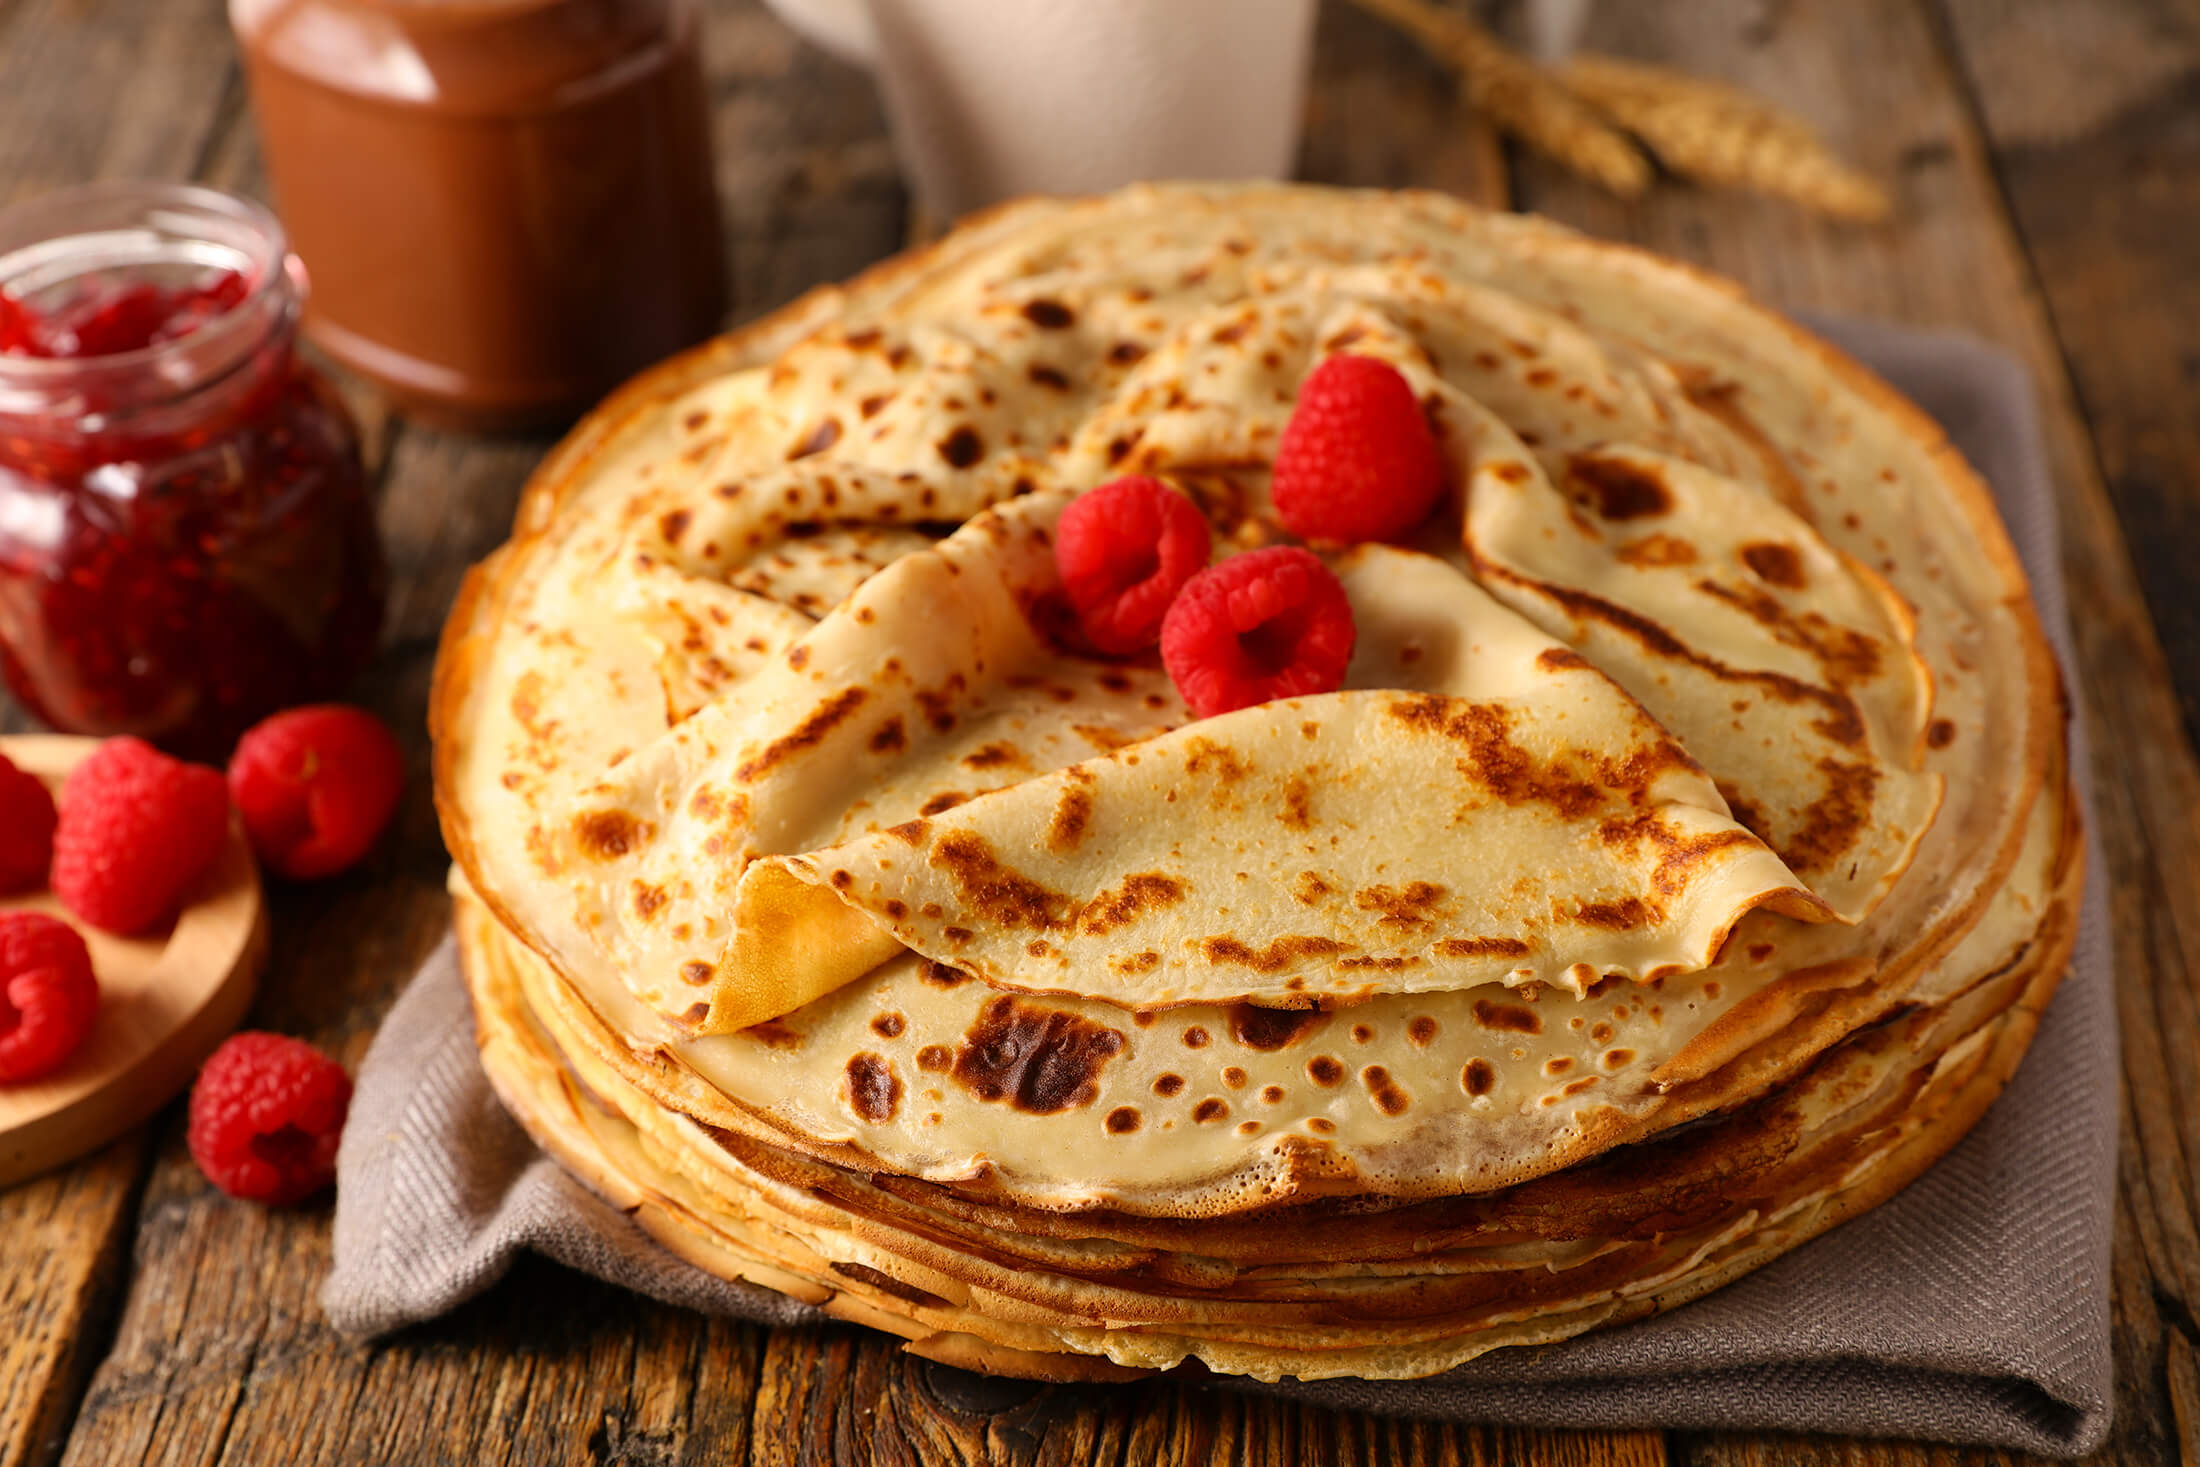 Stack of crepes with raspberries on top